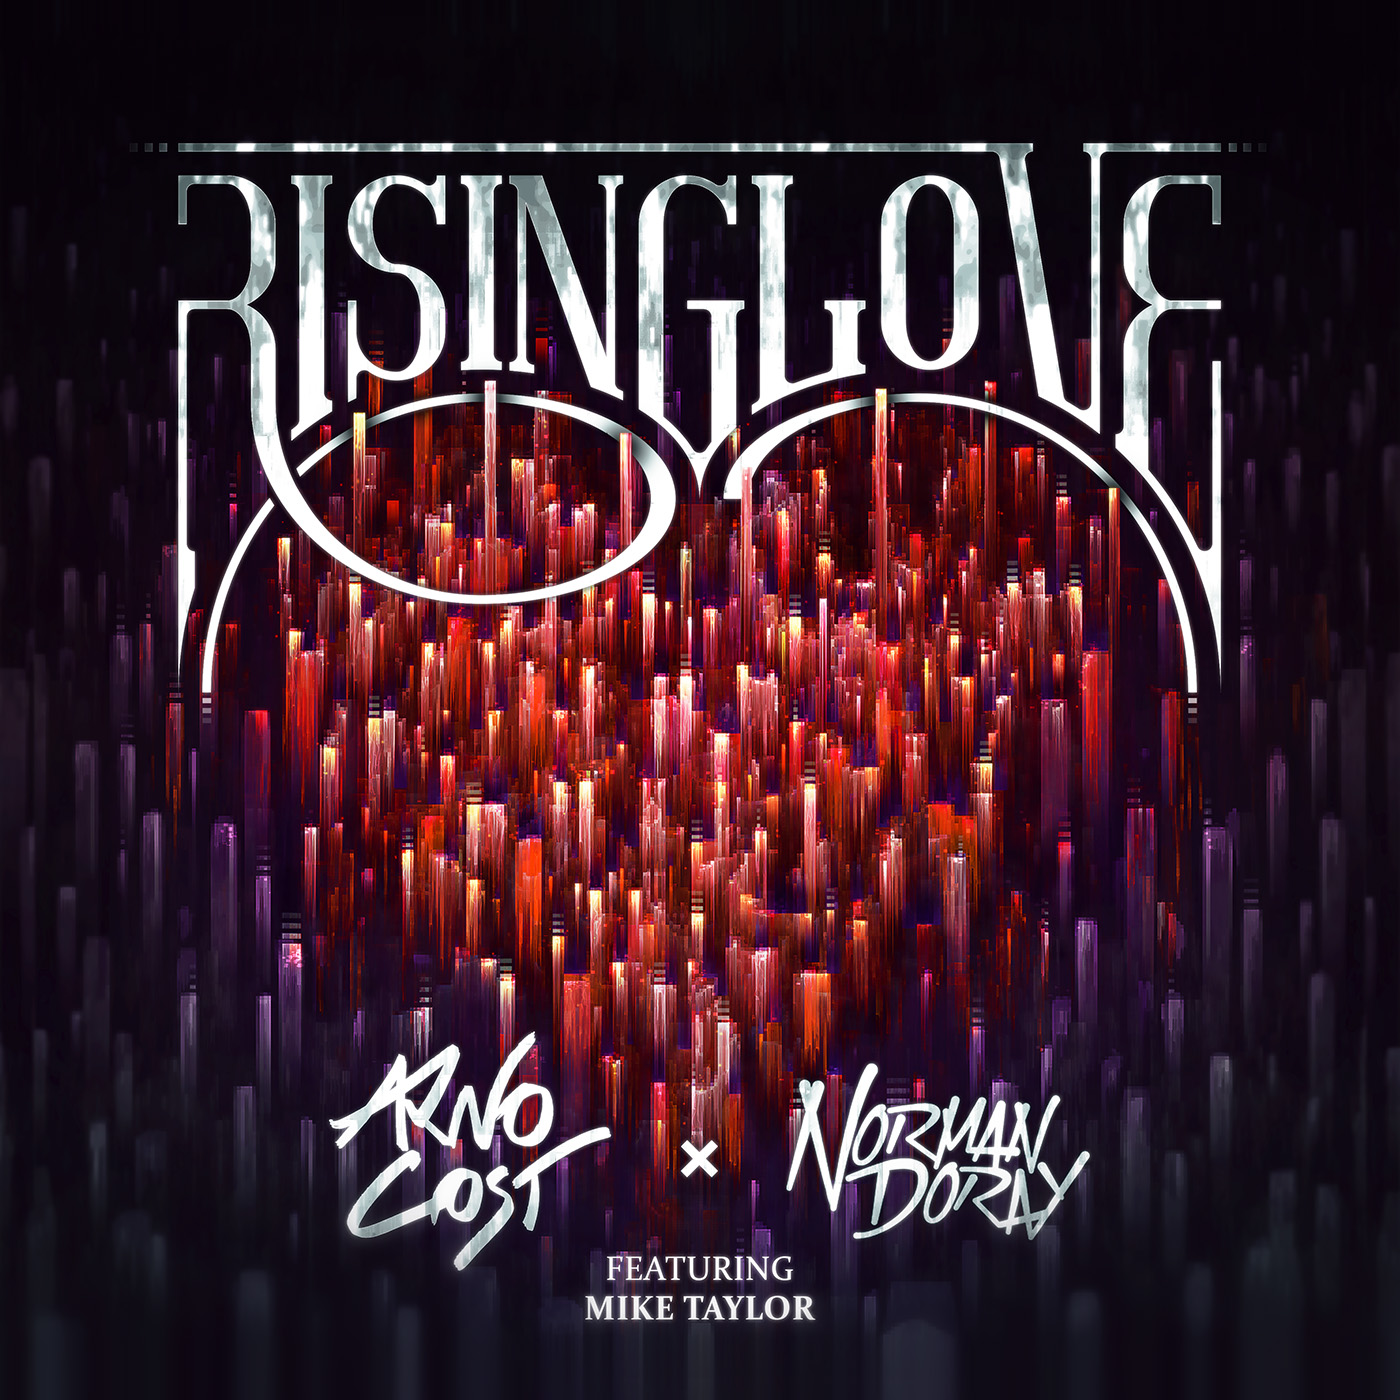 arnocost_normandoray_risinglove-copy